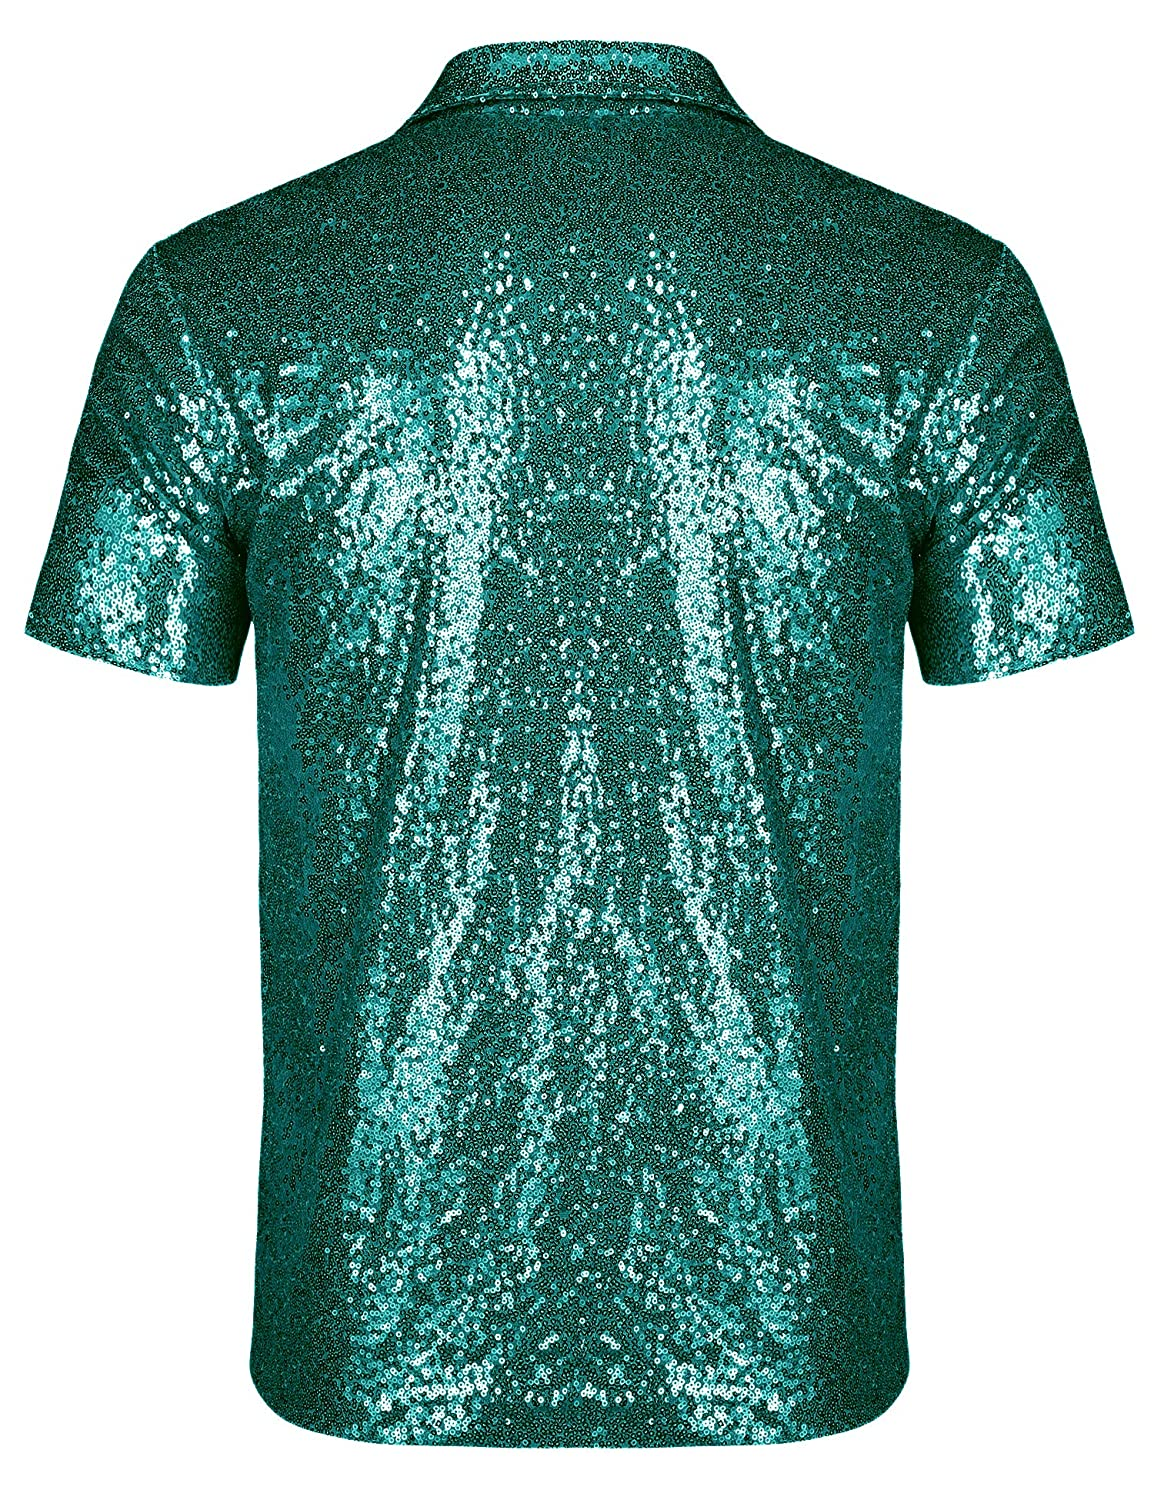 URRU Mens Relaxed Short Sleeve Turndown Sparkle Sequins Polo Shirts 70s Disco Nightclub Party T-Shirts Tops S-XXL